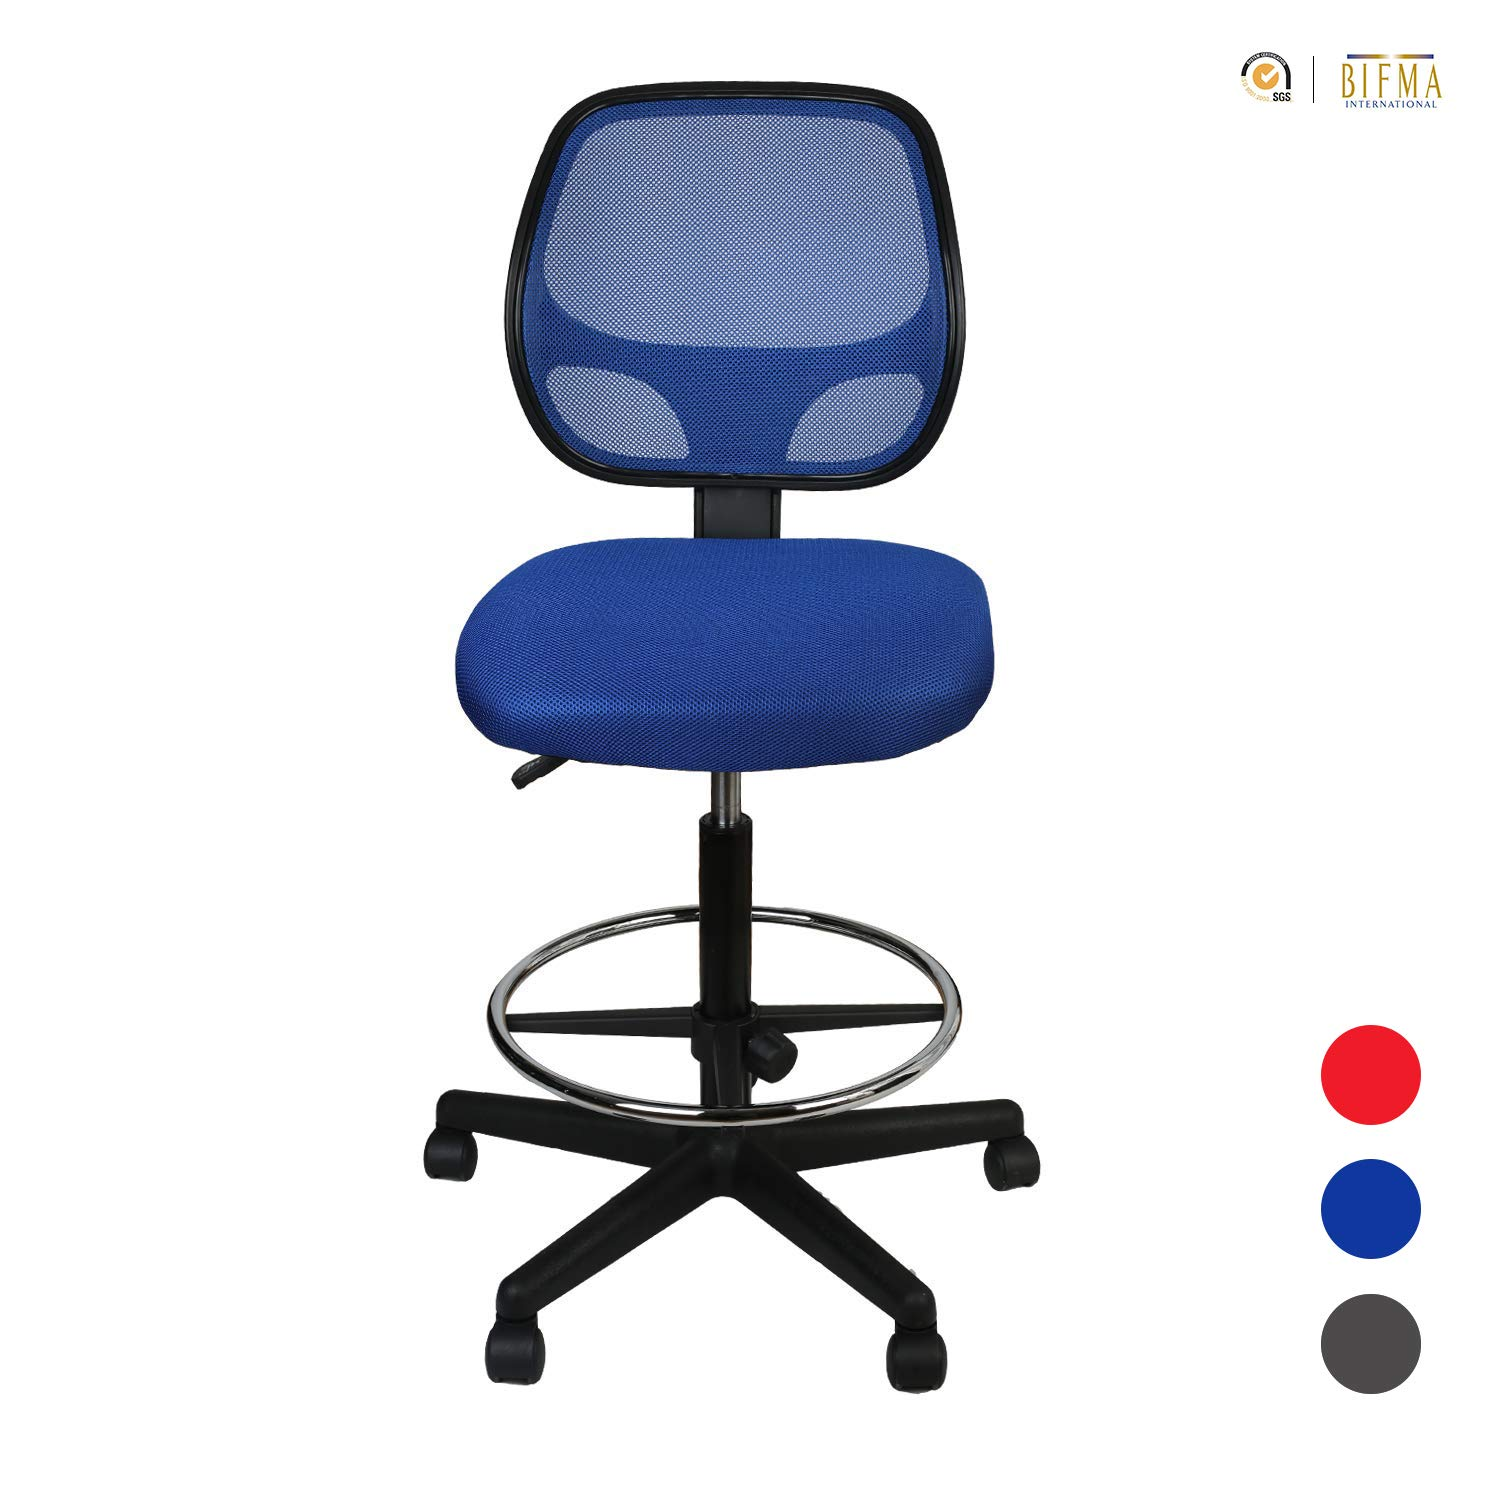 LUCKWIND Office Drafting Chair Mesh - Armless Task Ergonomic Lumbar Support MidBack Computer Desk Chair Adjustable Stool Swivel Chair with Adjustable Chrome Foot Rest (SGS-BIFMA 21-27'' Blue) for Prime by Sundux